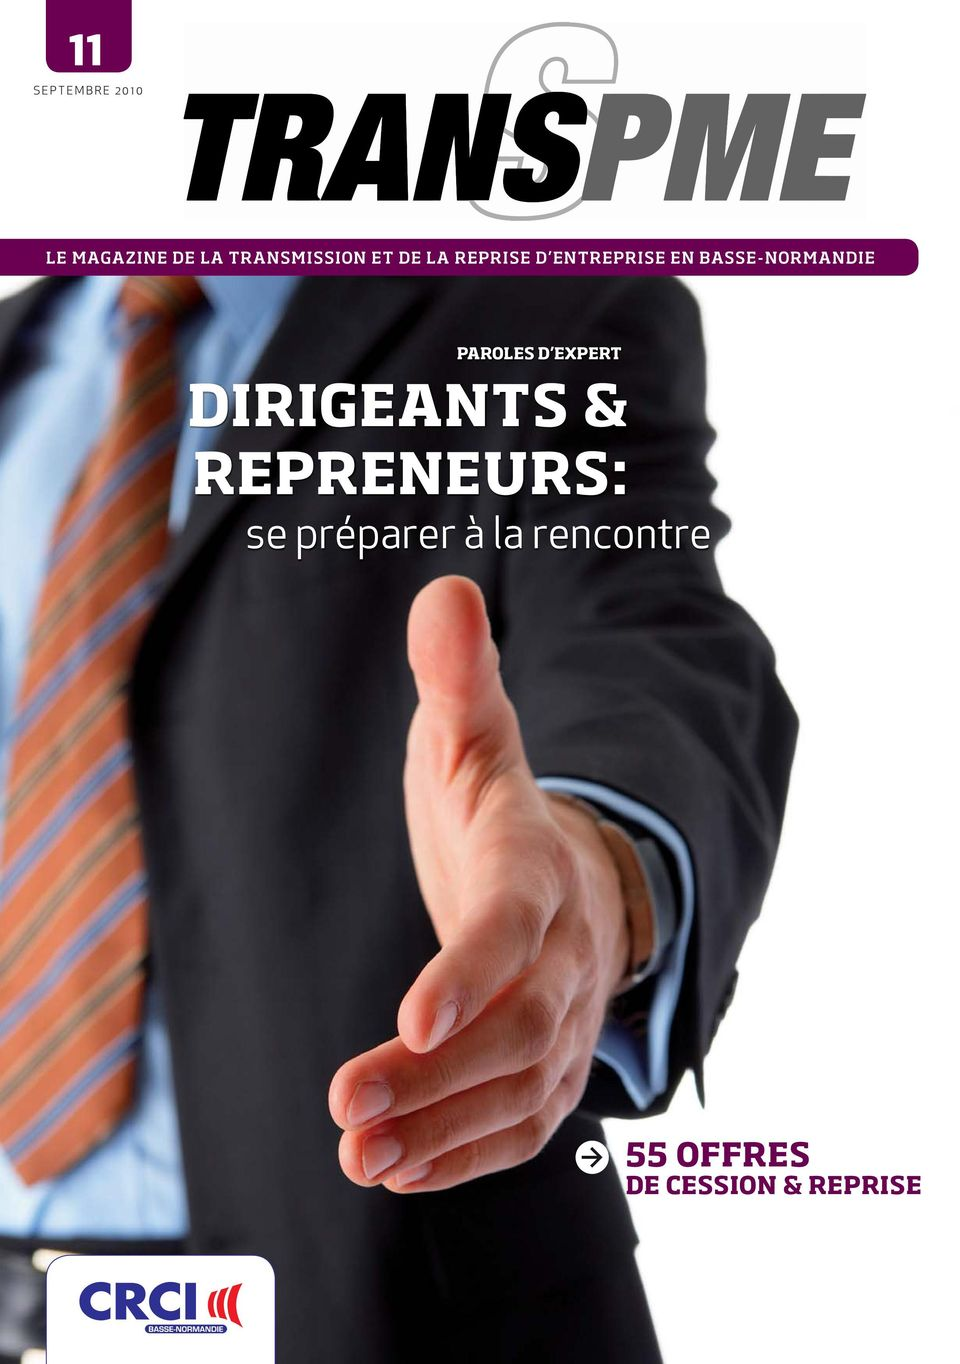 PAROLES D EXPERT DIRIGEANTS & REPRENEURS: se